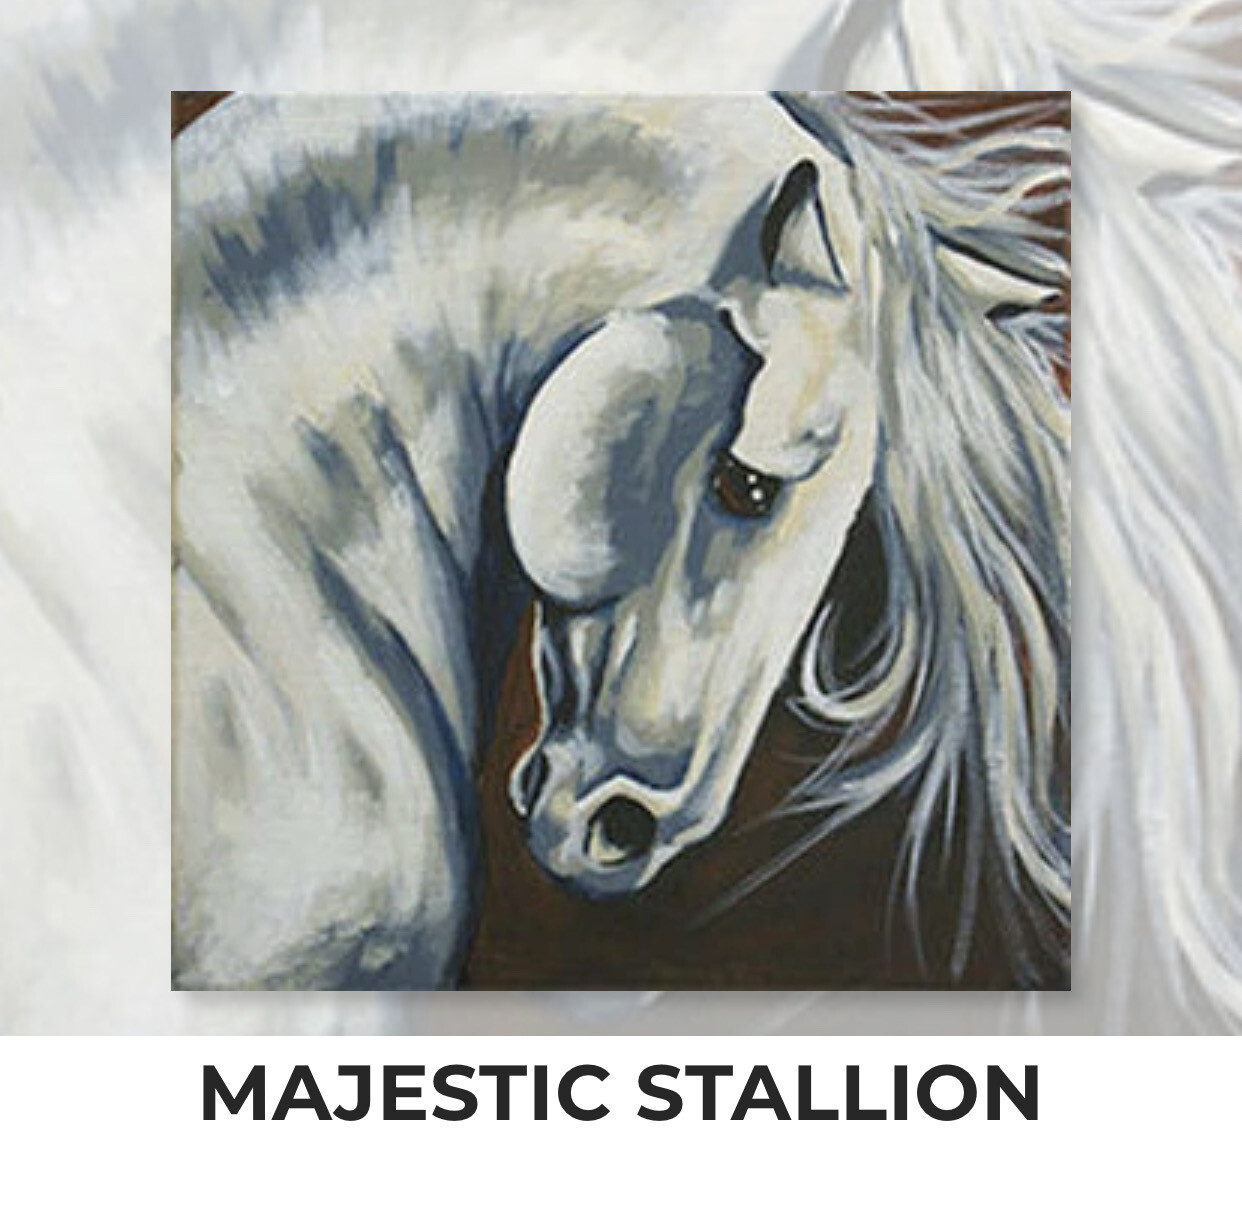 Majestic Stallion ADULT OR TWEEN Acrylic Paint On Canvas DIY Art Kit - 3 Week Special Order